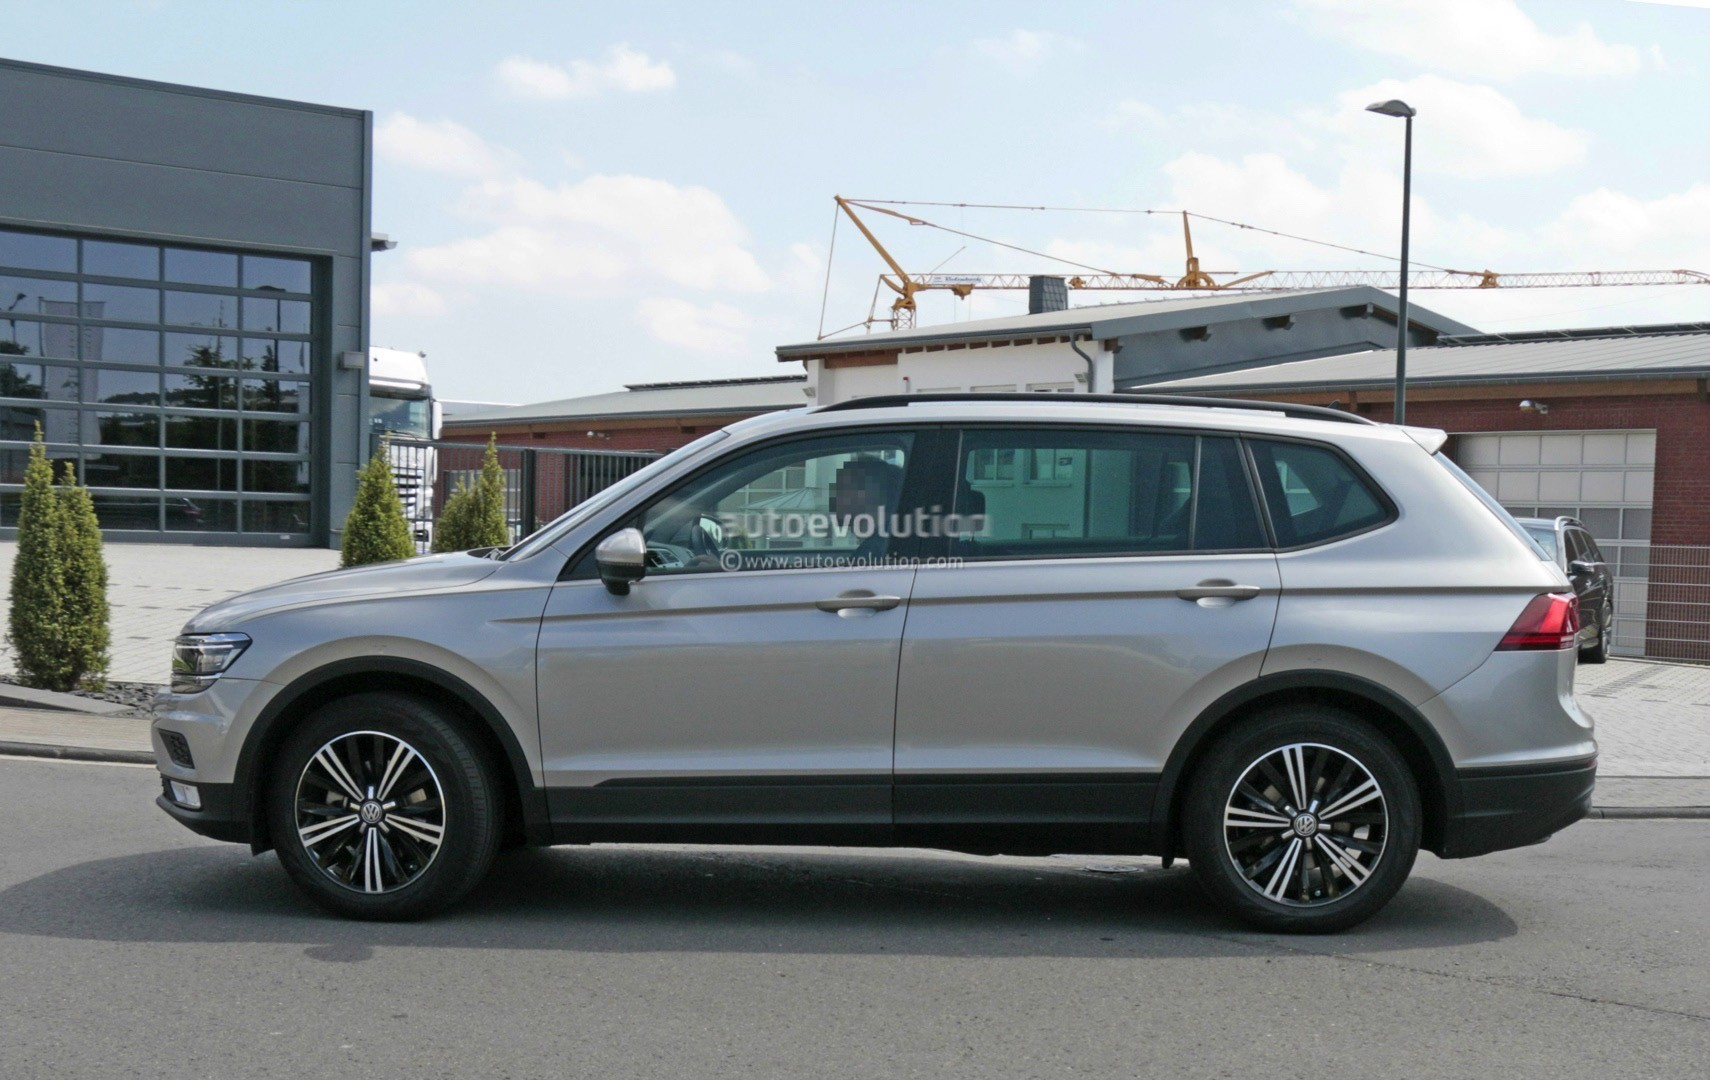 2017 Volkswagen Tiguan XL Spied Without Camouflage, Looks Exactly As ...